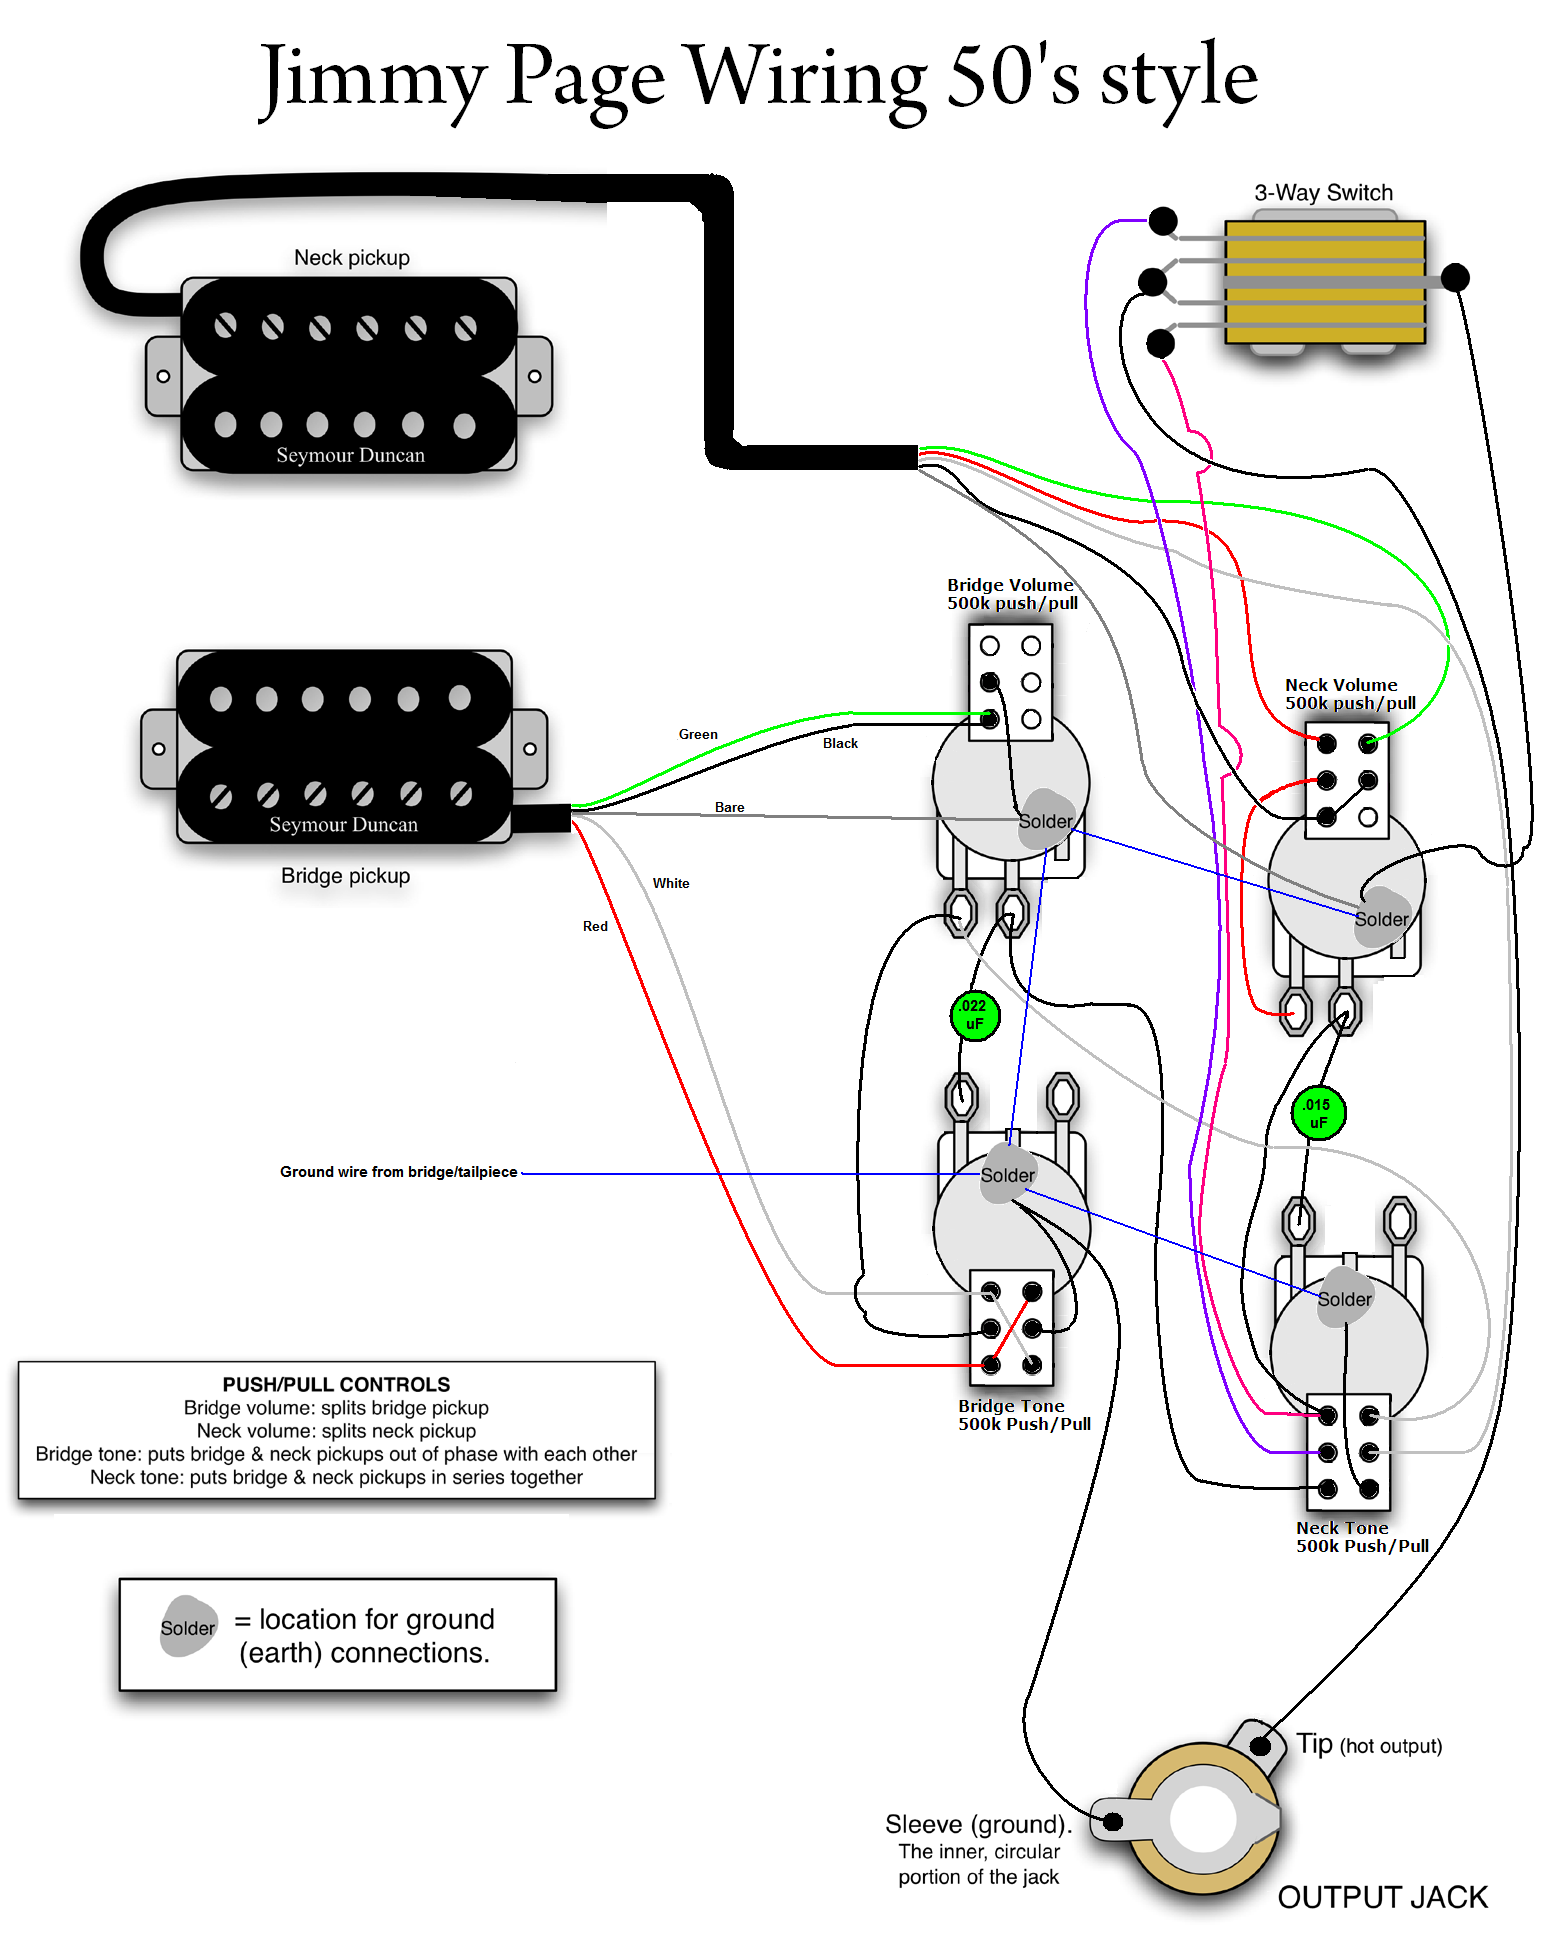 small resolution of jimmy page 50s wiring mylespaul com instruments in 2019 guitar gibson jimmy page wiring diagram